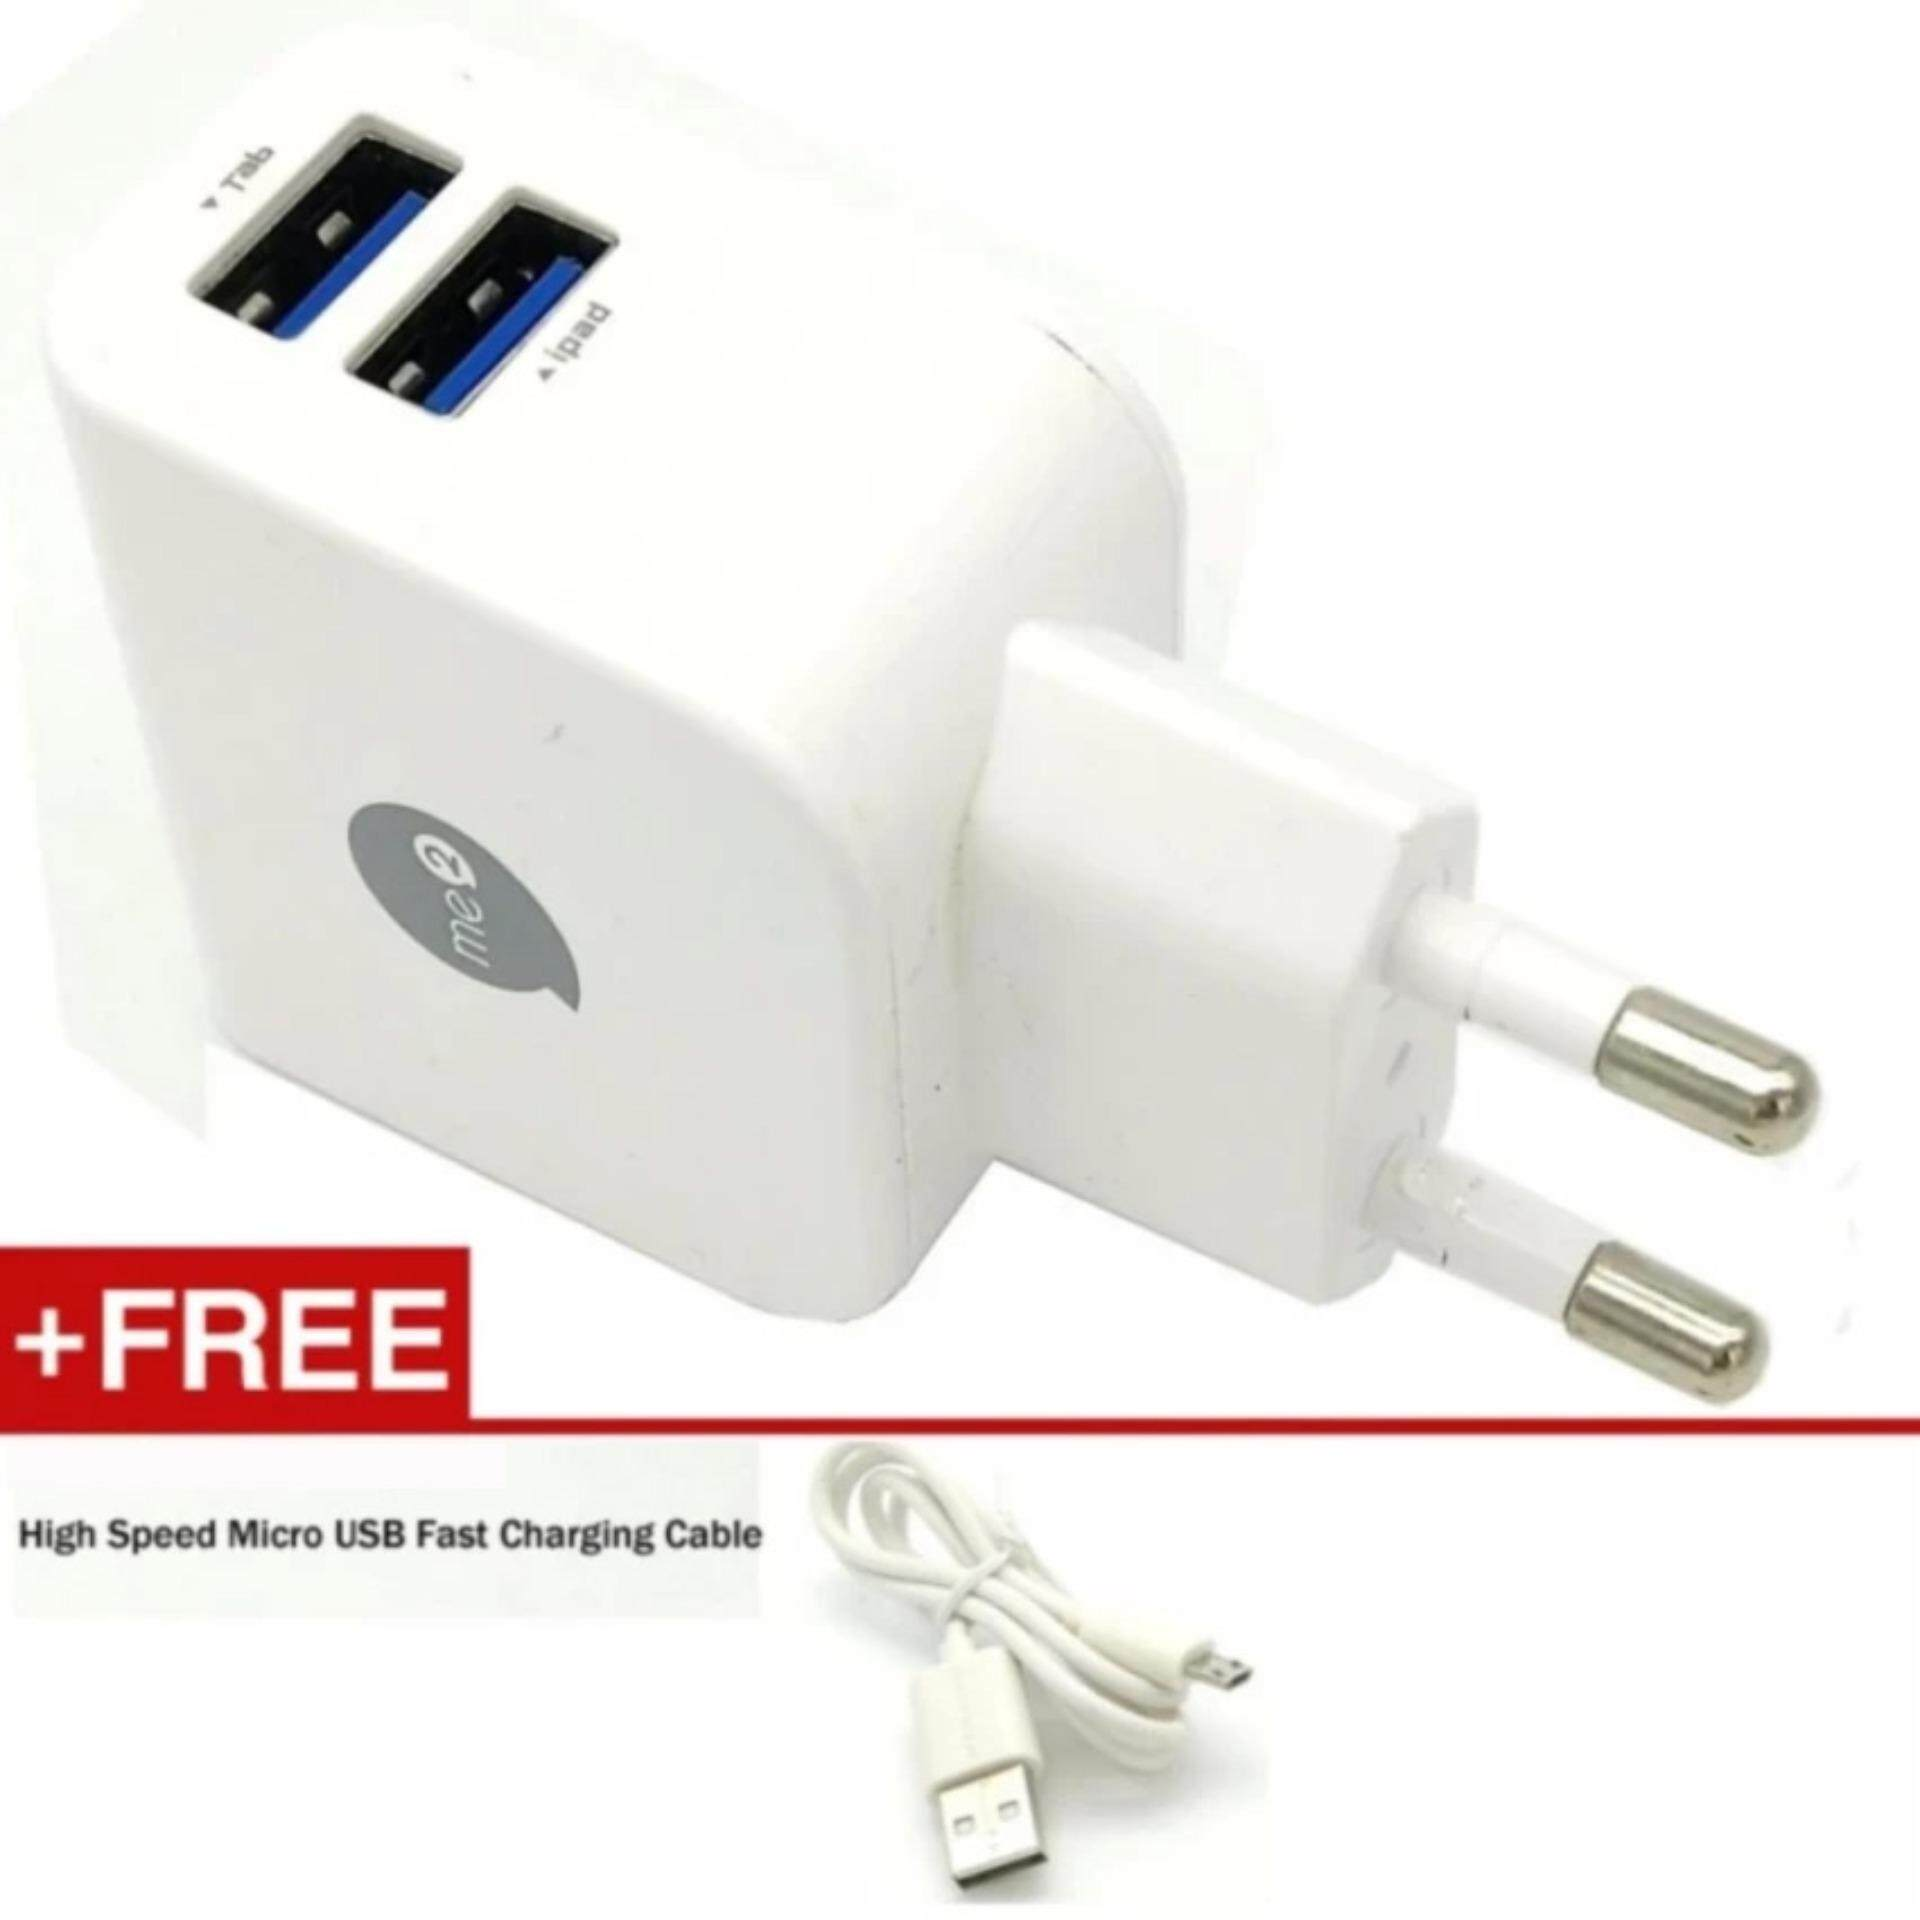 High Quality 2.1A + 1A 2Port Usb Fast Charger For Ipad,Iphone,smartphone,psp,gps,digital camera